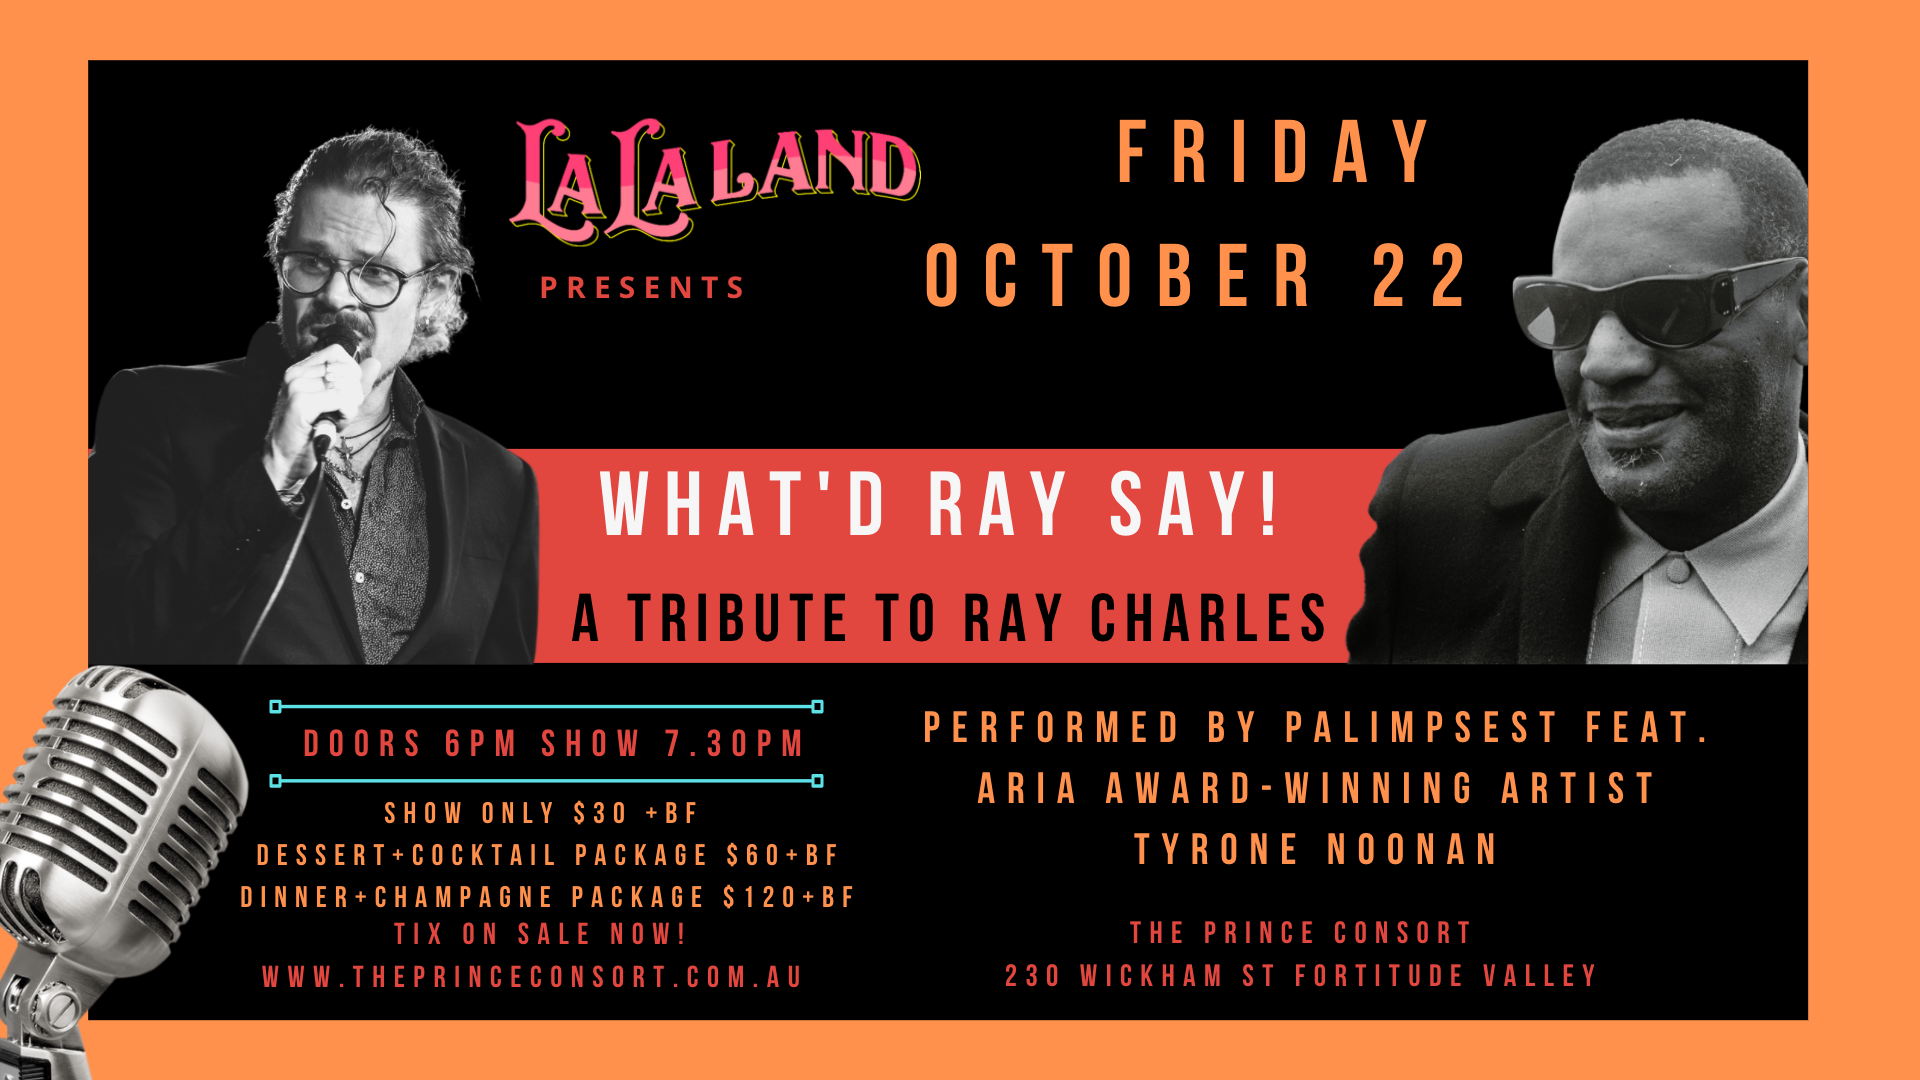 WHAT'D RAY SAY! Celebrating the music ofRay Charles